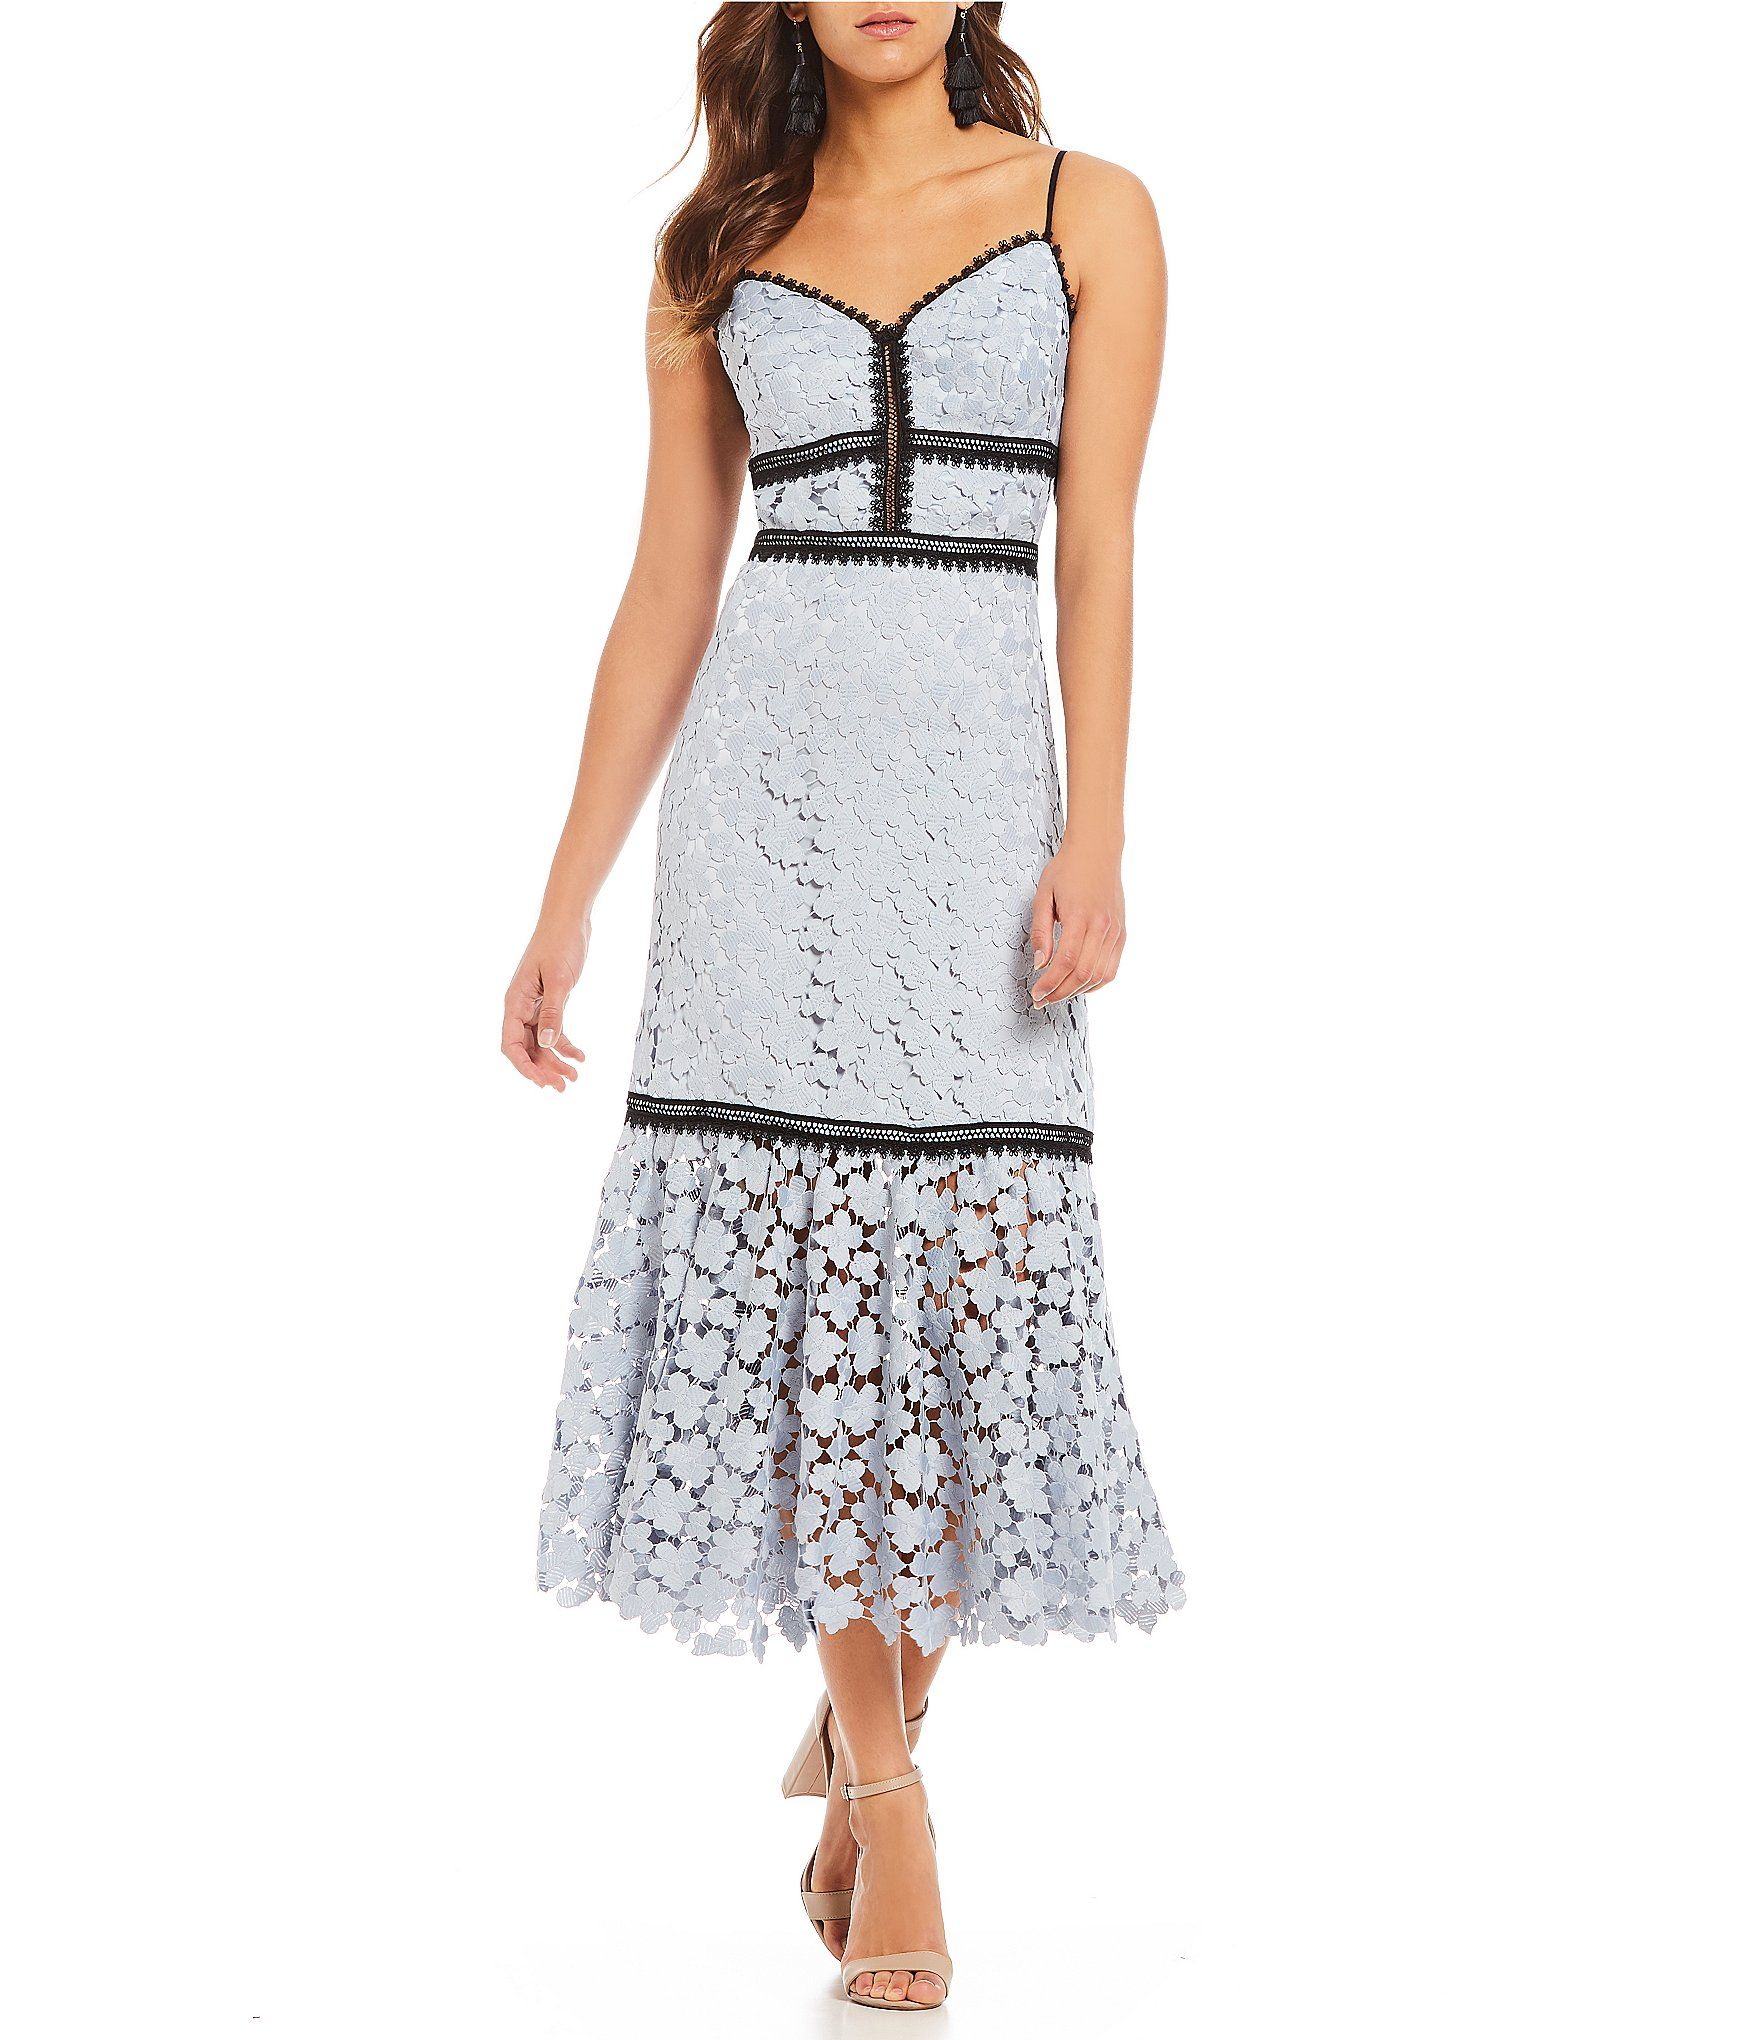 00a989330c92 Jill Jill Stuart Floral Lace Midi Dress #Dillards Summer Dresses, Formal  Dresses, Dillards